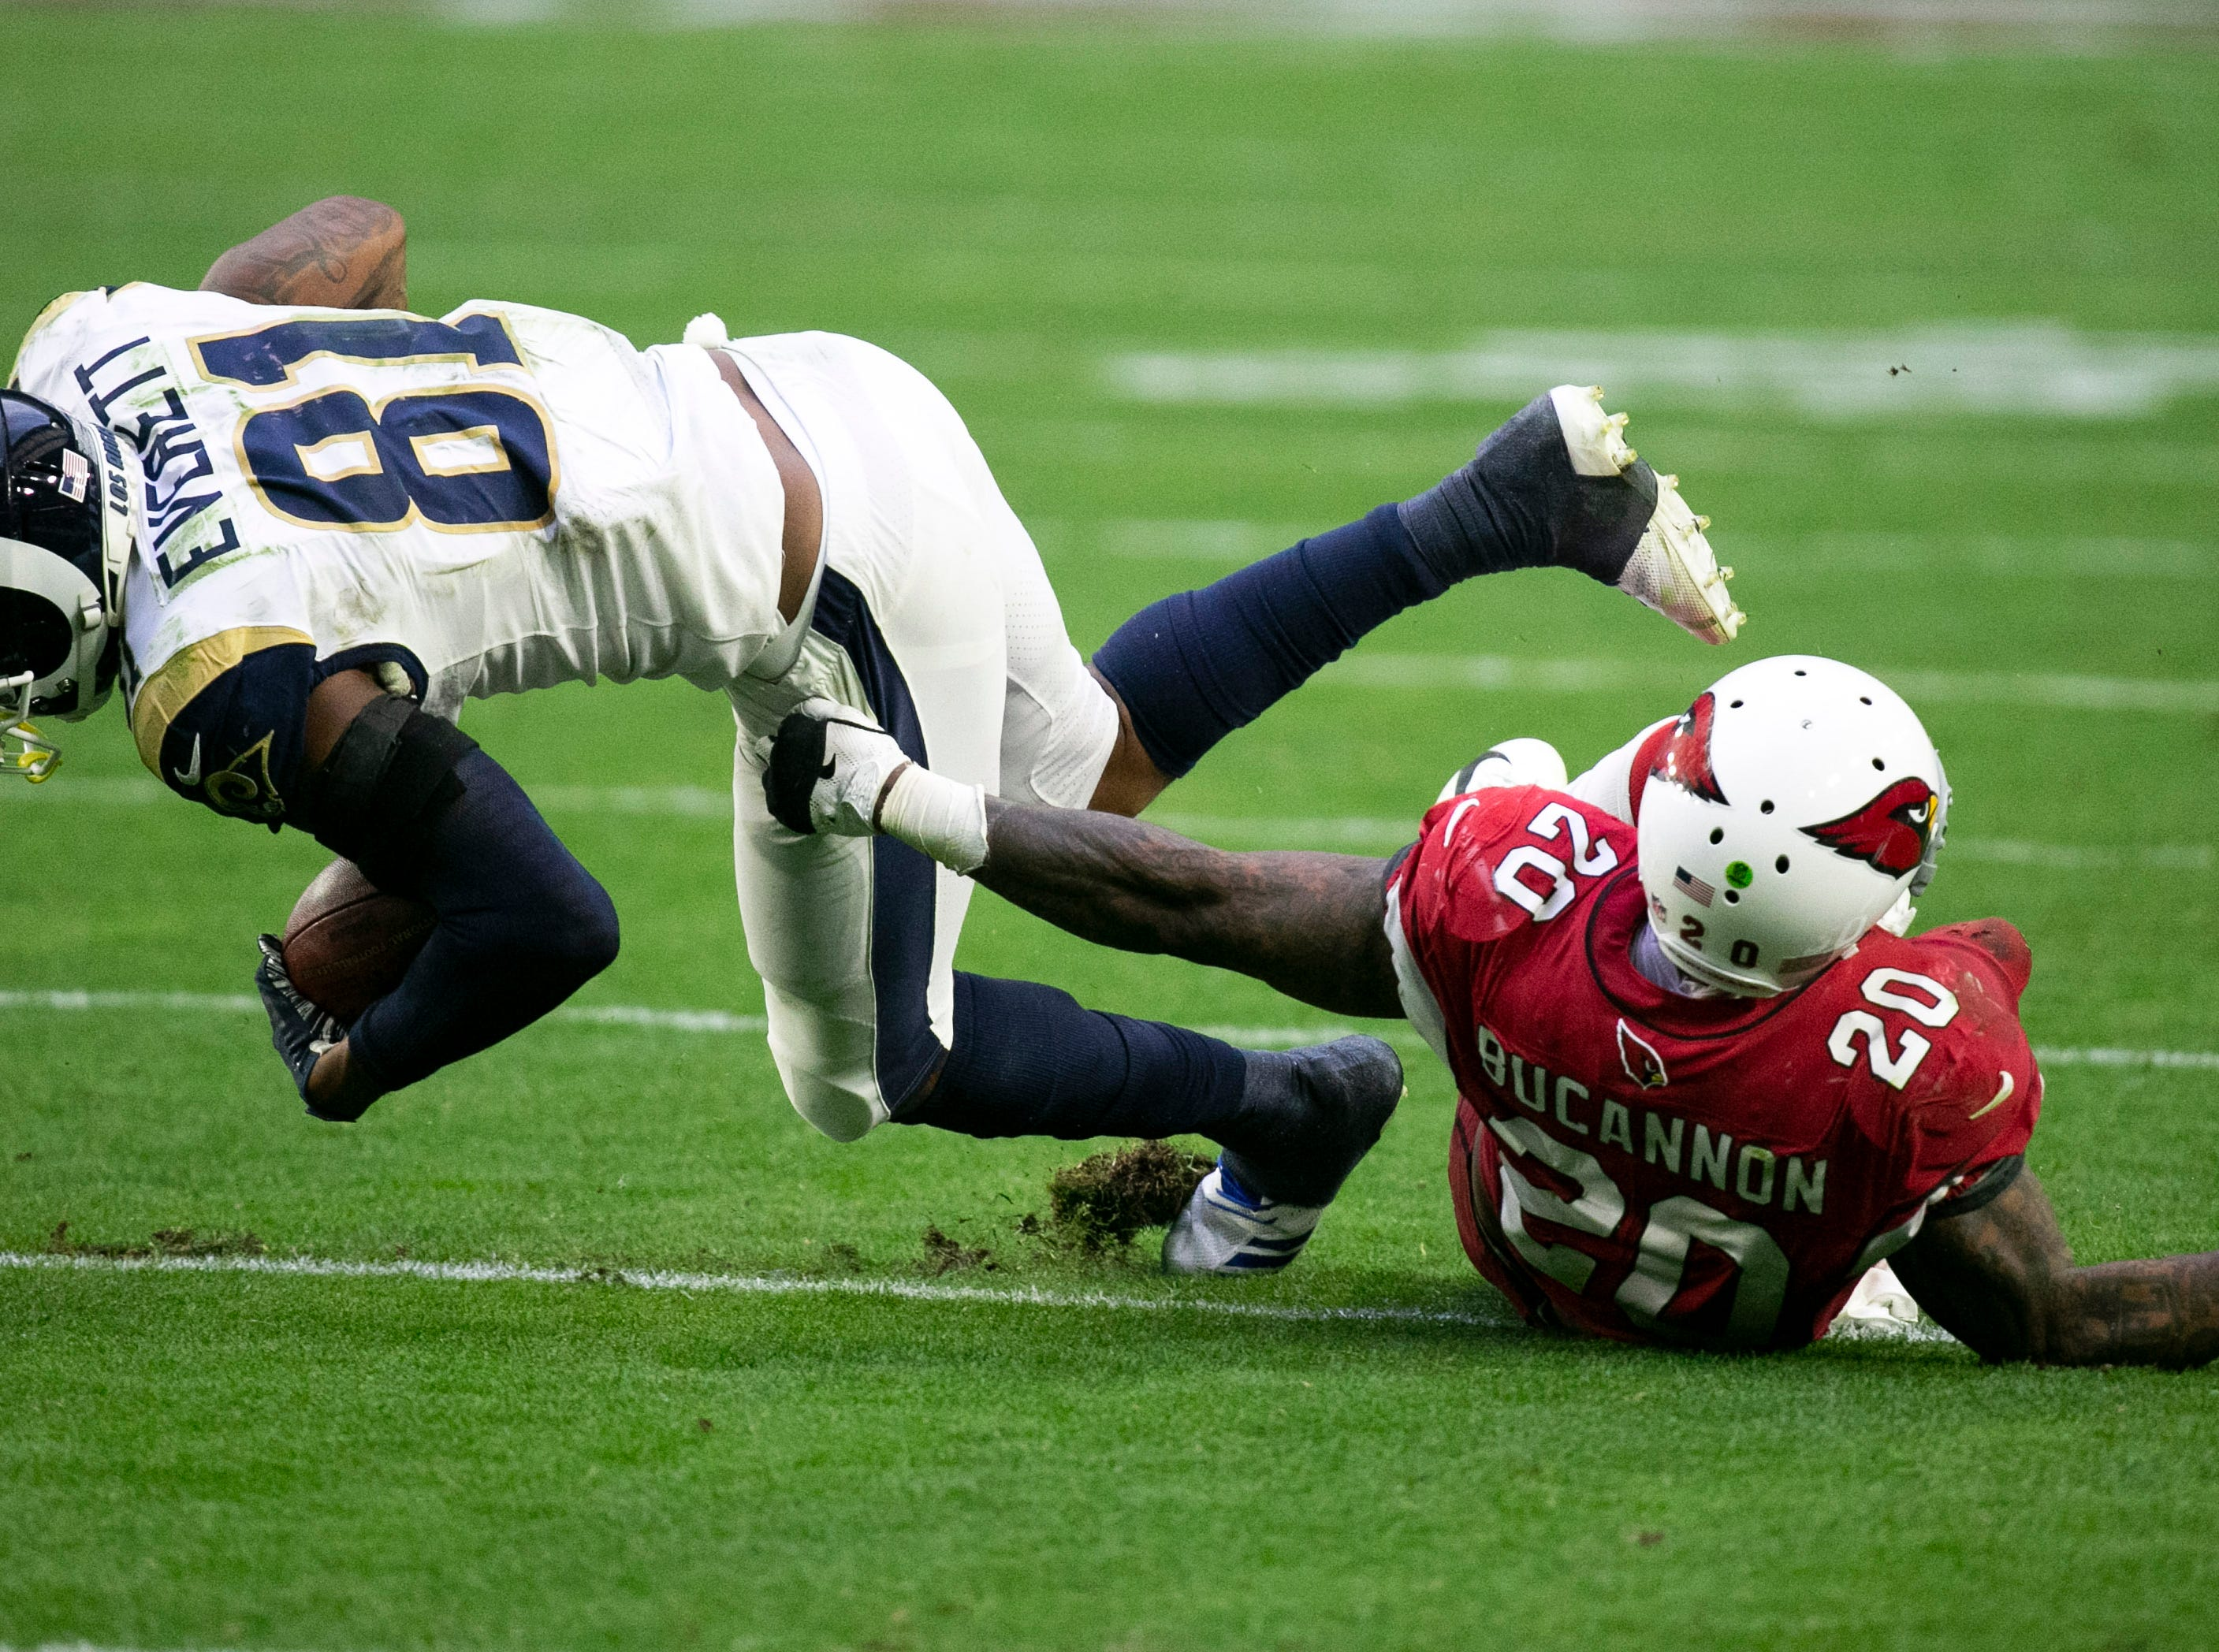 Cardinals linebacker Deone Bucannon attempts the tackle on Rams tight end Gerald Everett during the fourth quarter of the NFL game at State Farm Stadium in Glendale on Sunday, December 23, 2018.